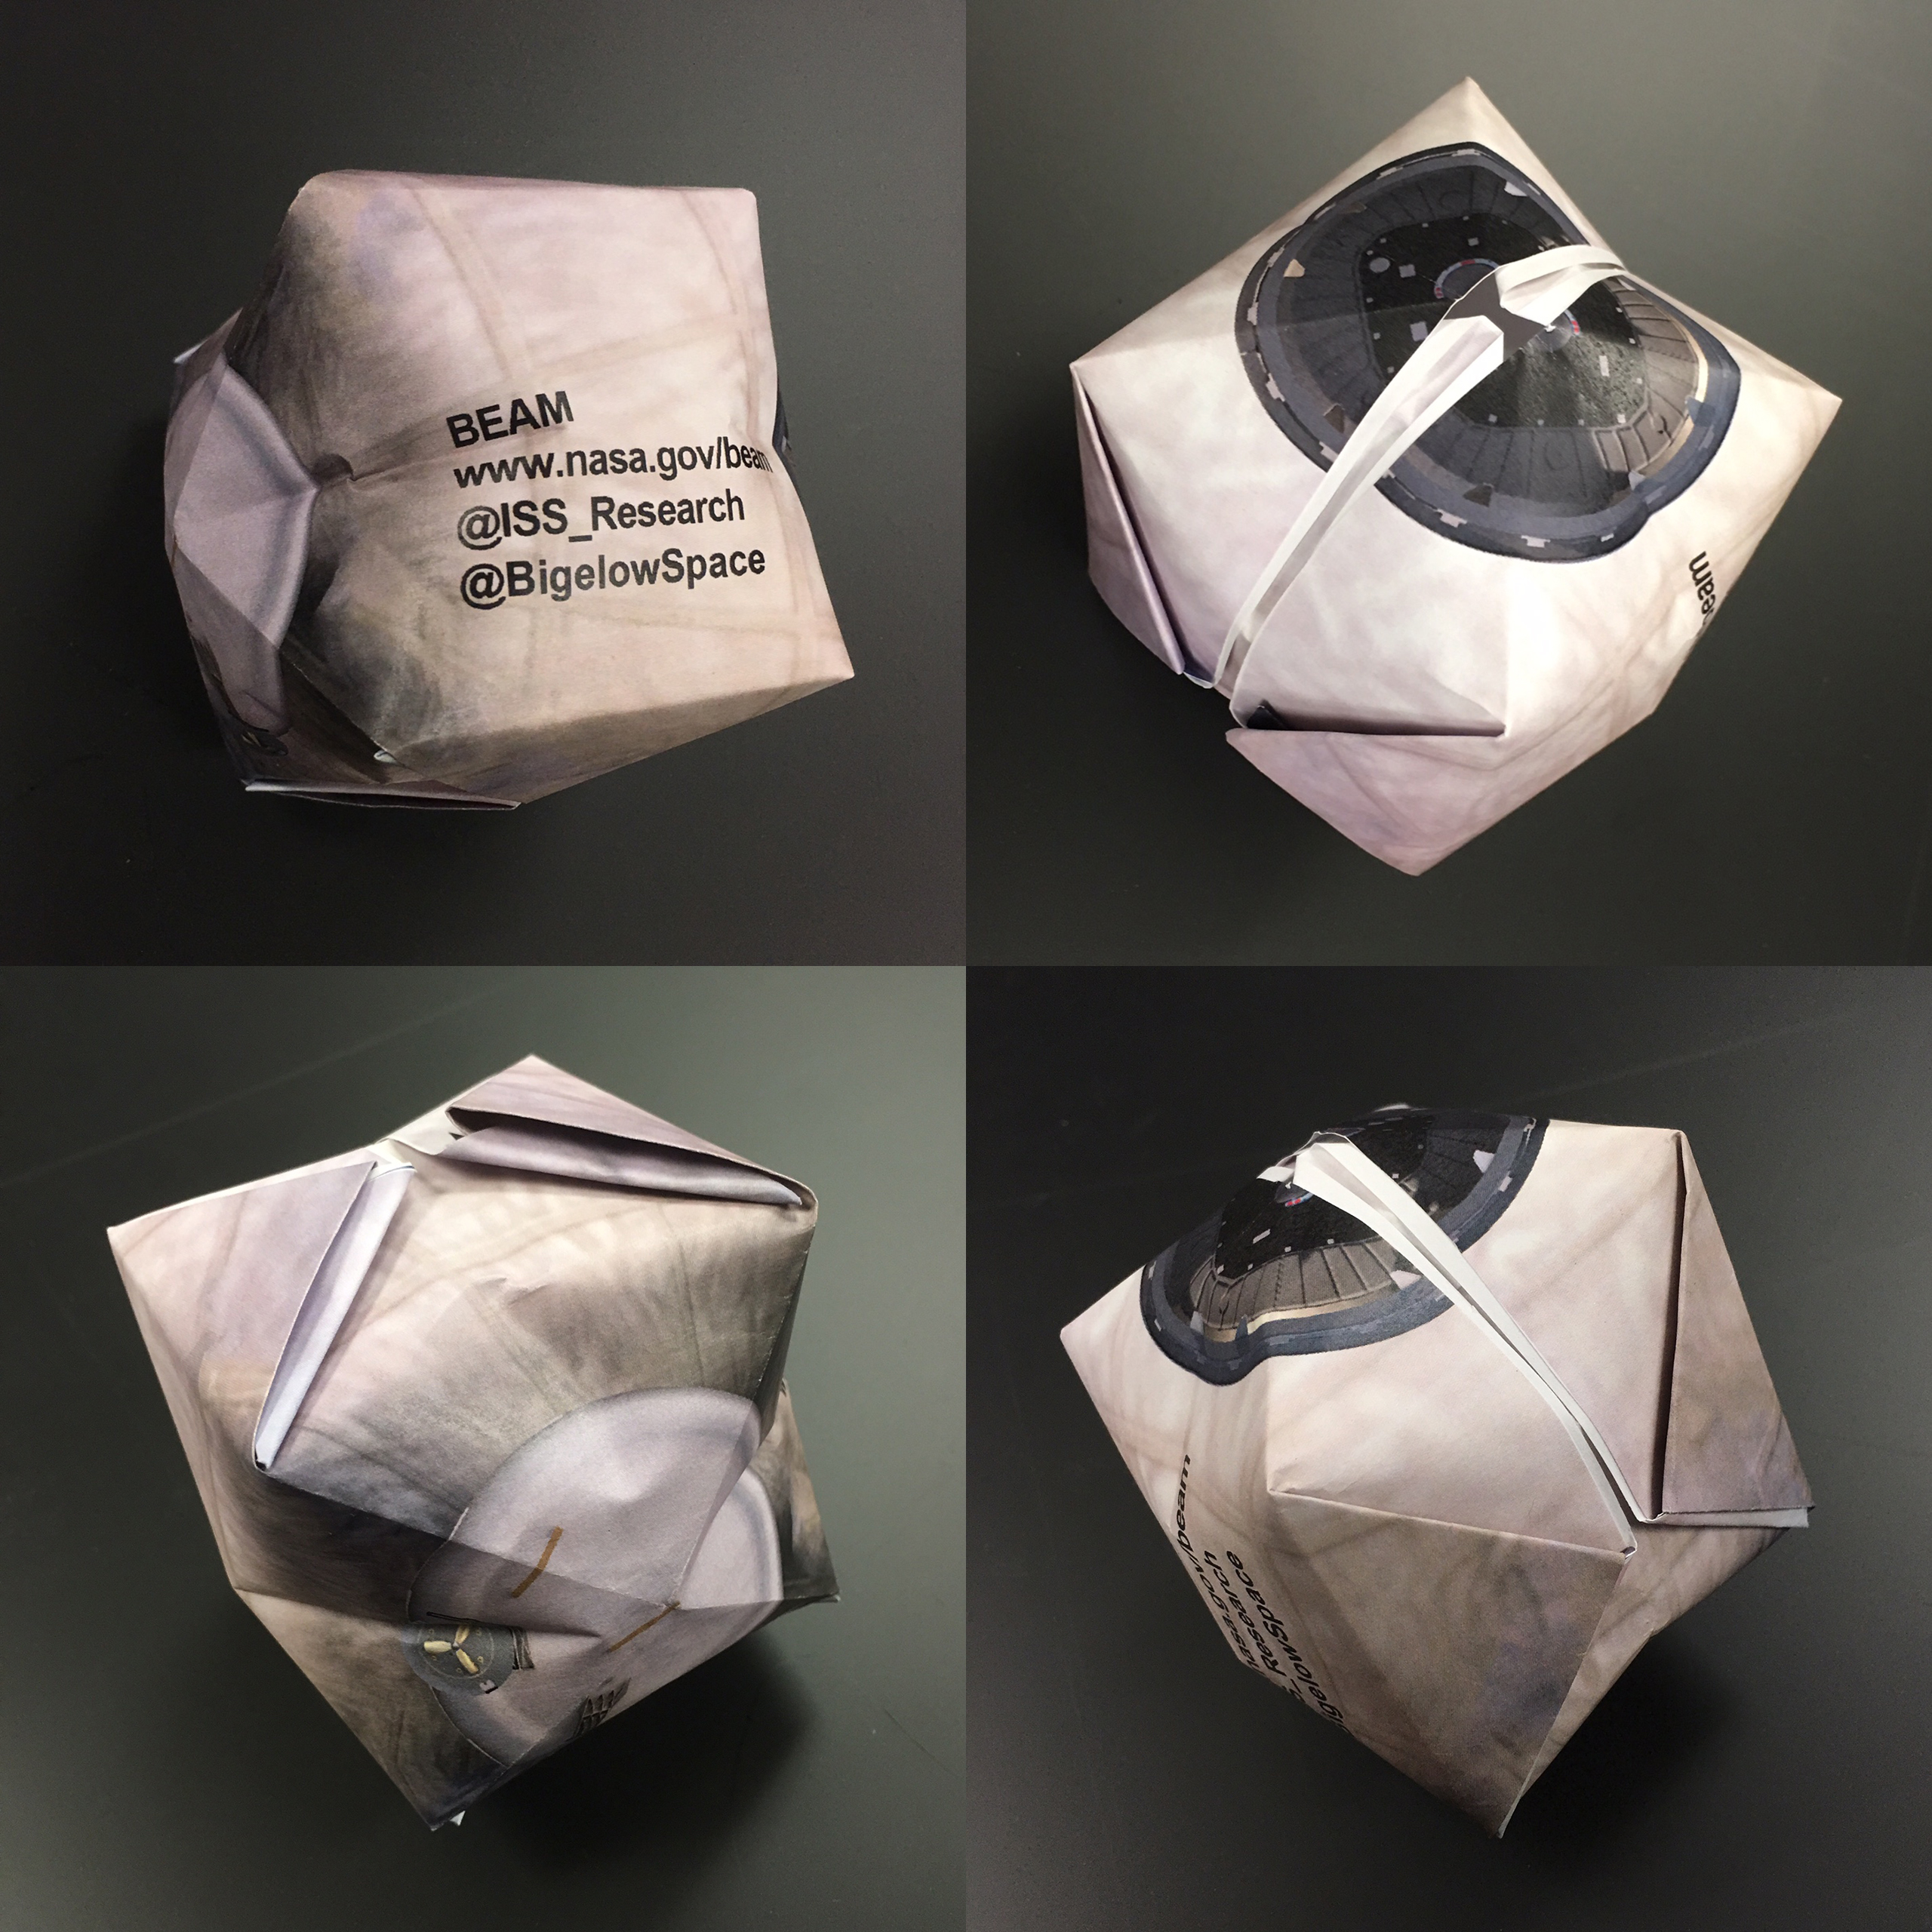 Fold And Expand Your Own BEAM Origami Module